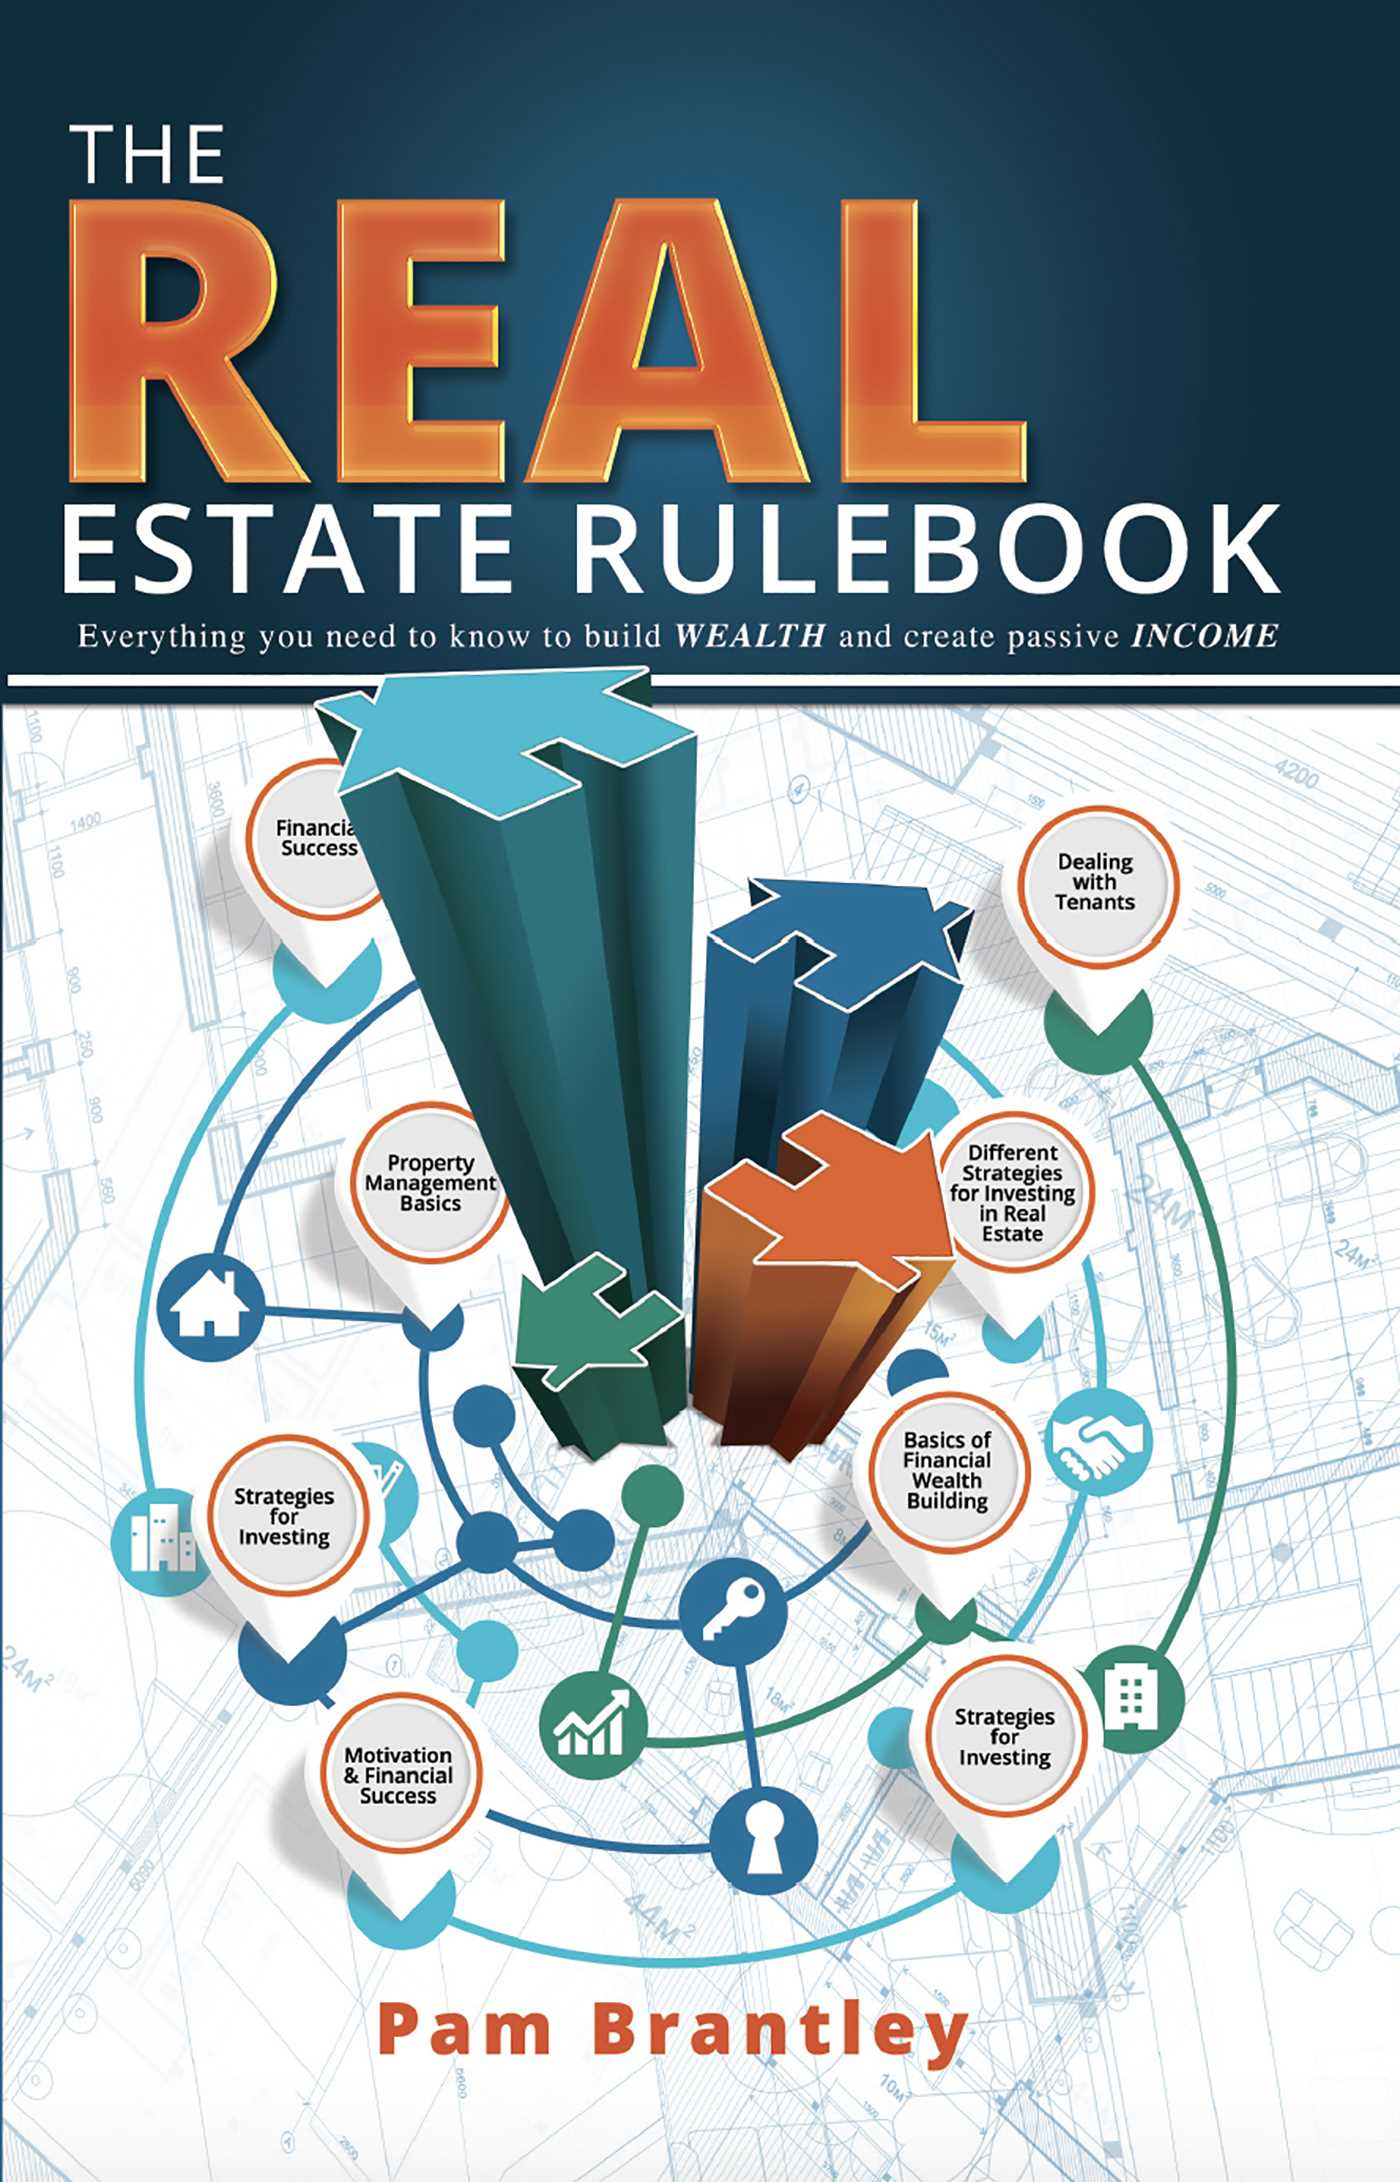 The Real Estate Rule Book